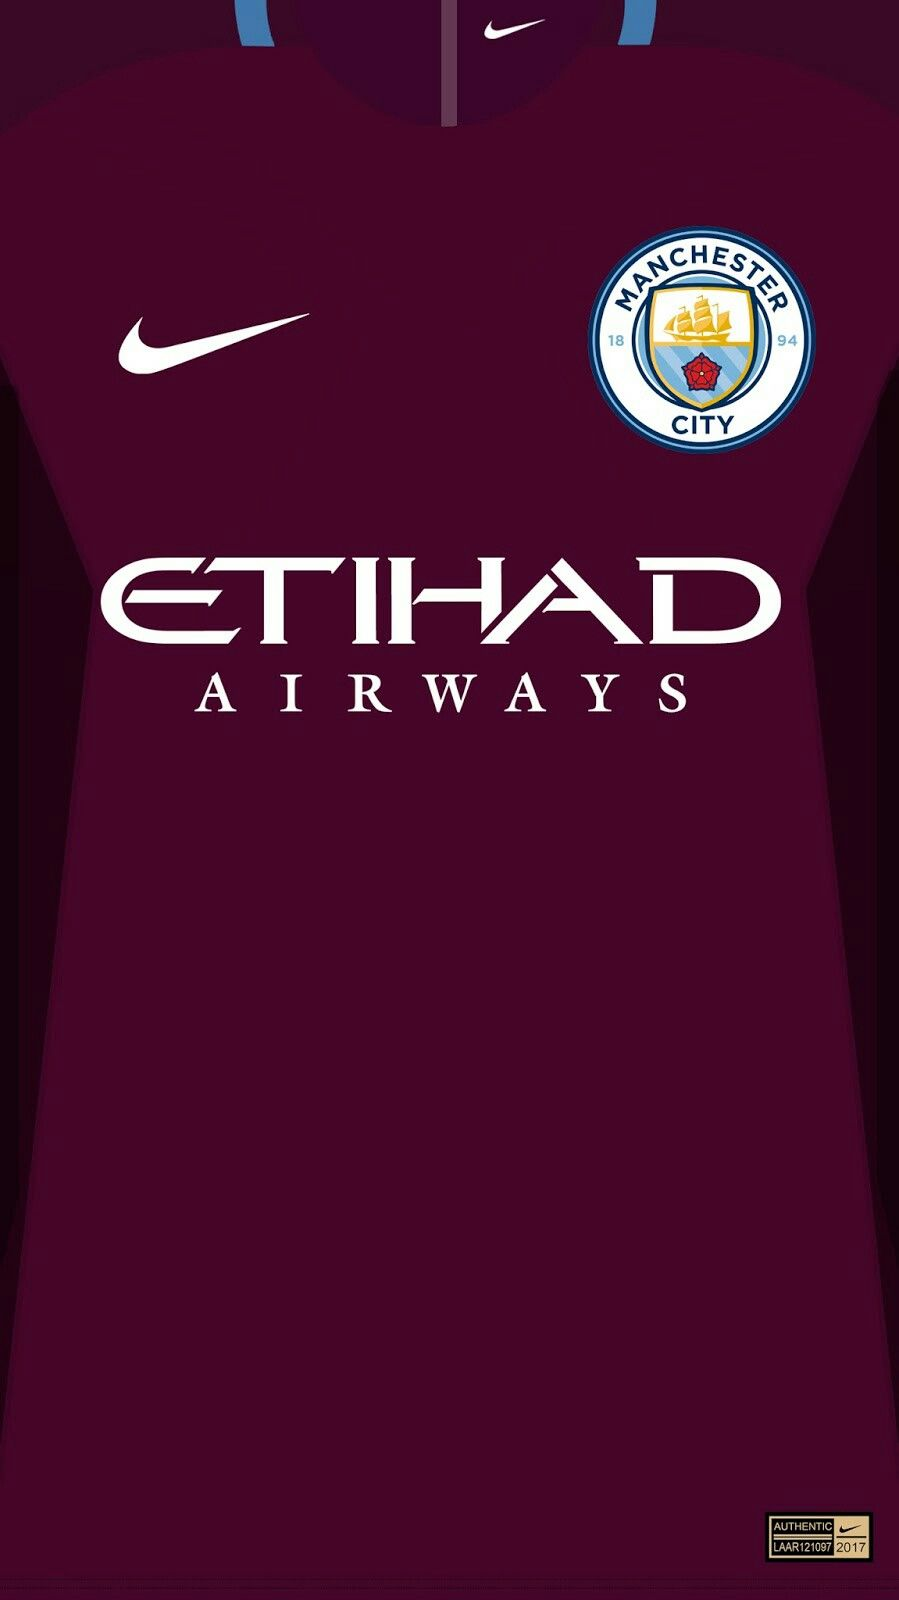 979051a278 Manchester City 17-18 kit away Camisetas De Futebol, Camisas Futebol,  Futebol Internacional